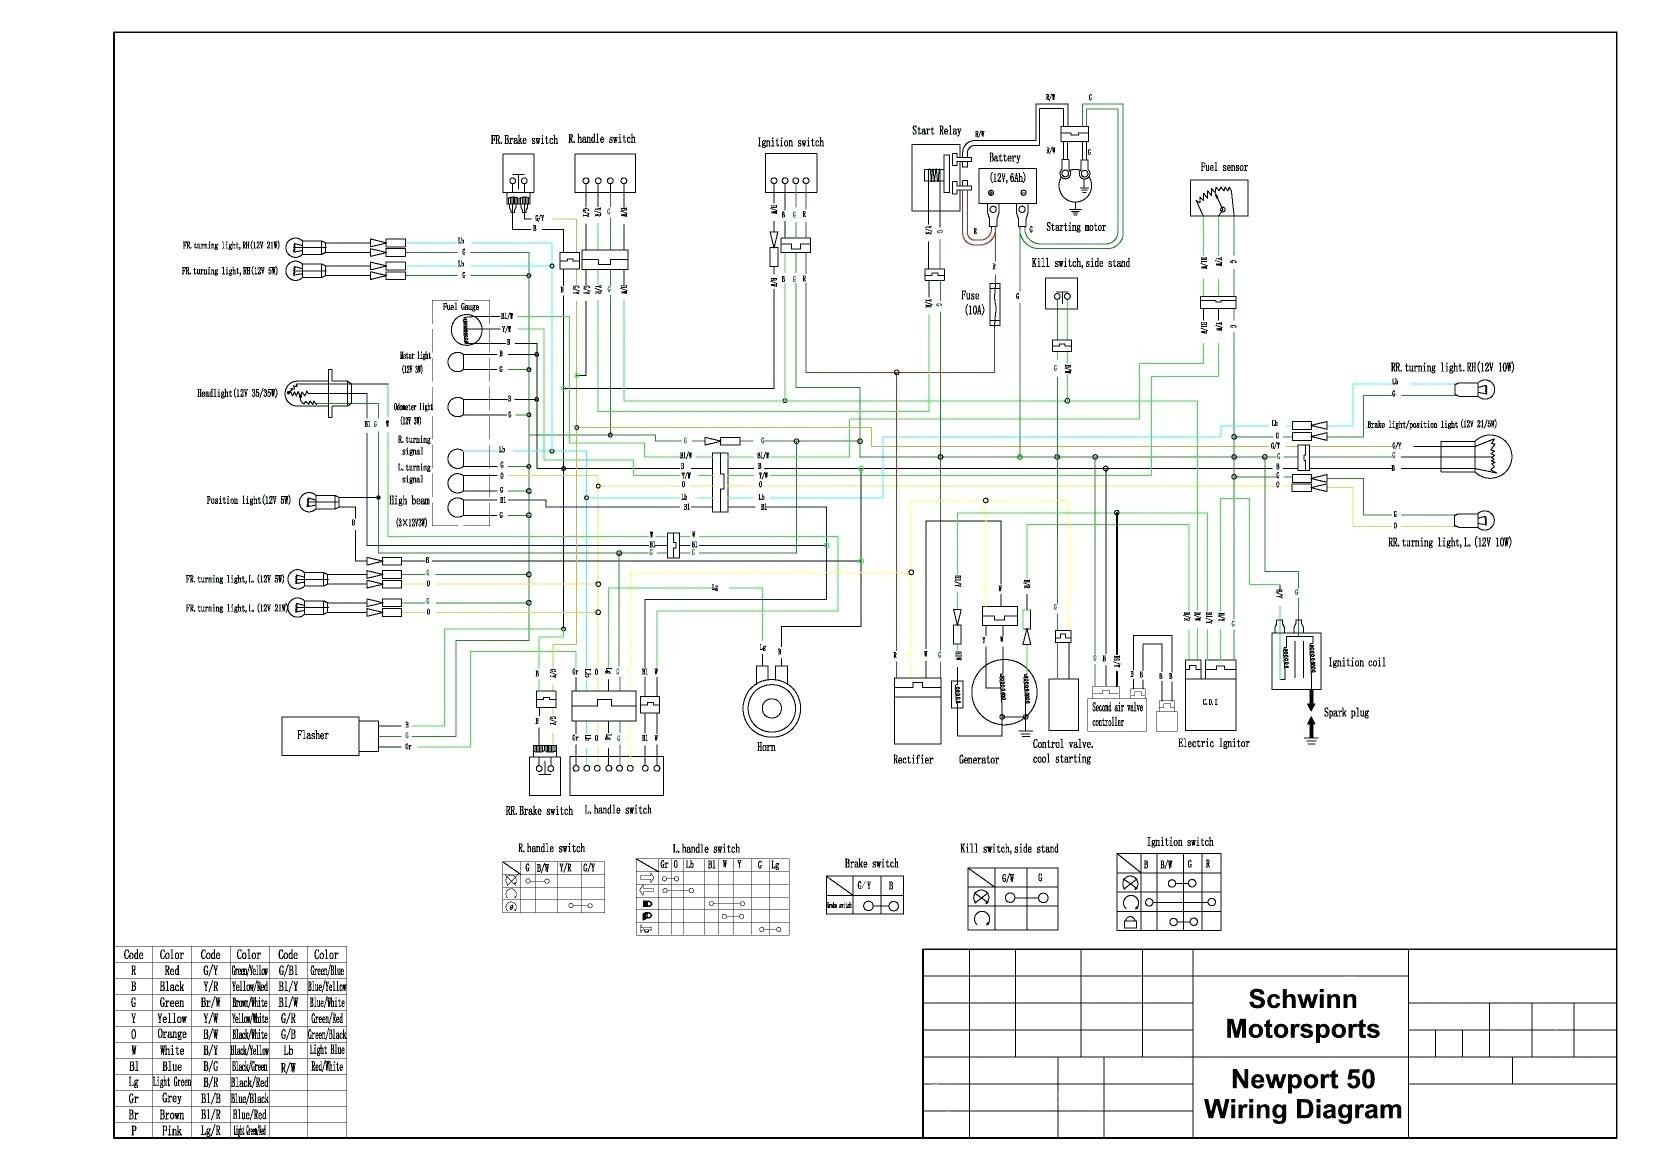 F1B4997 Wiring Diagram For Jonway 150 | Wiring ResourcesWiring Resources